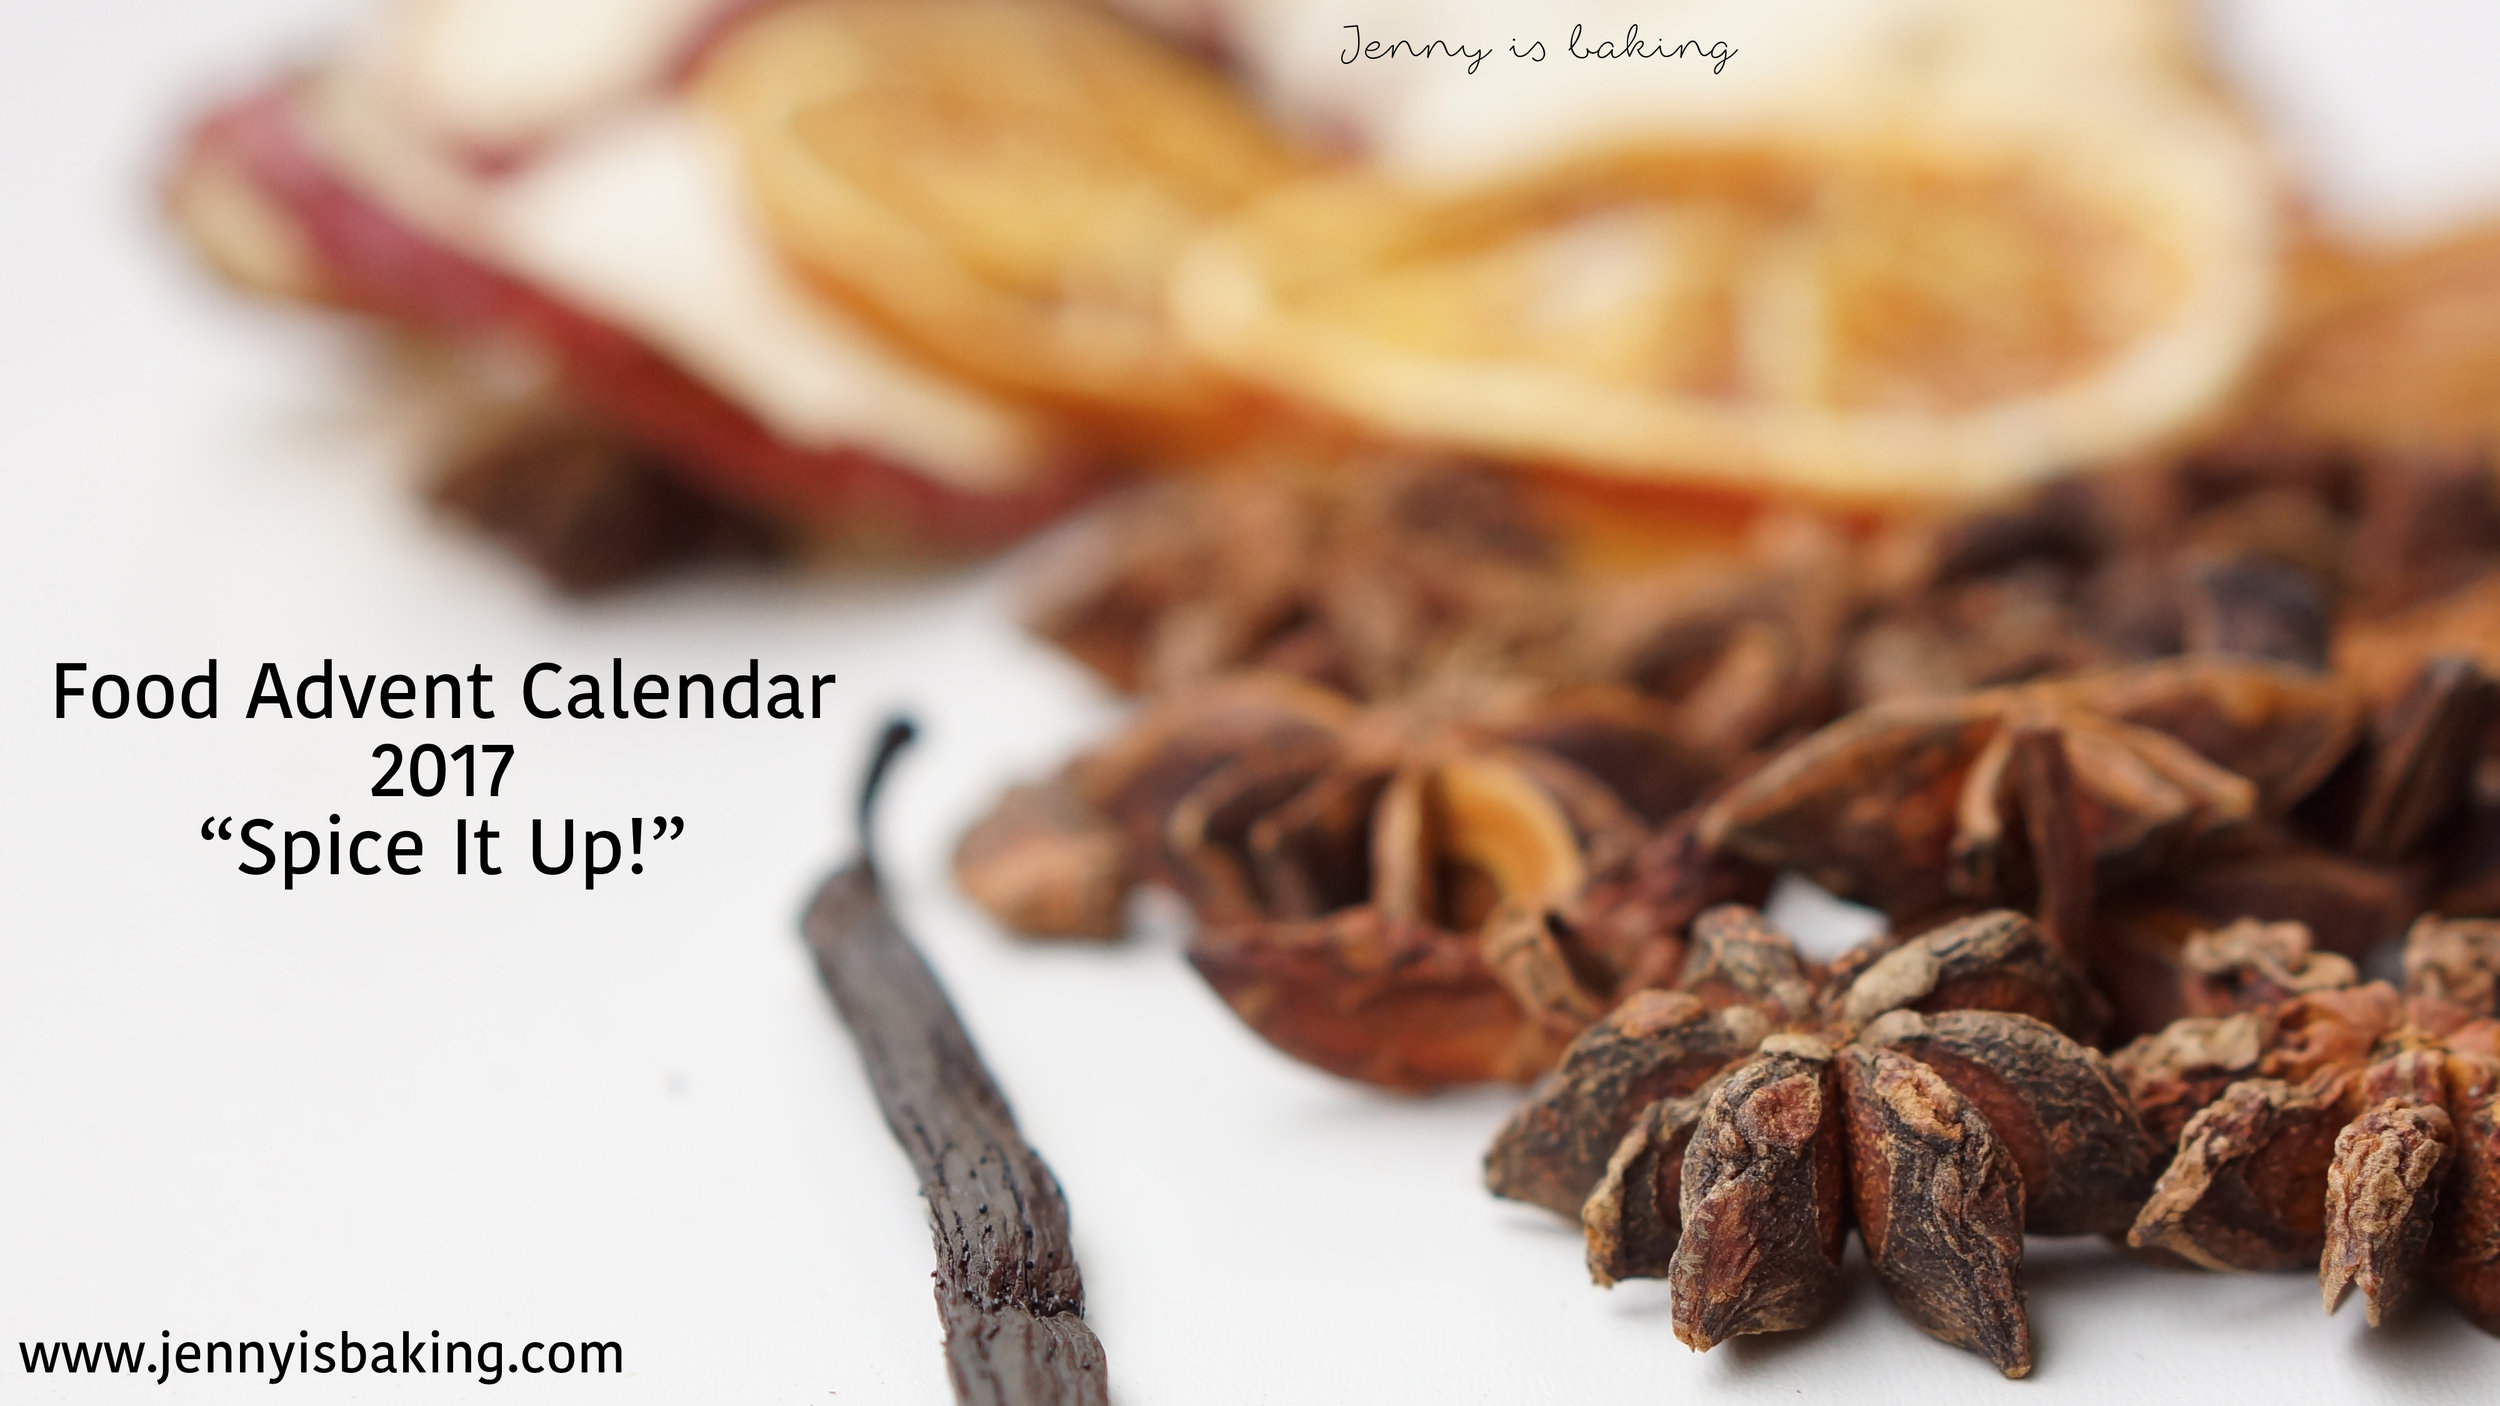 Food_Advent_Calendar_Spice_It_Up_Horizontal.jpg